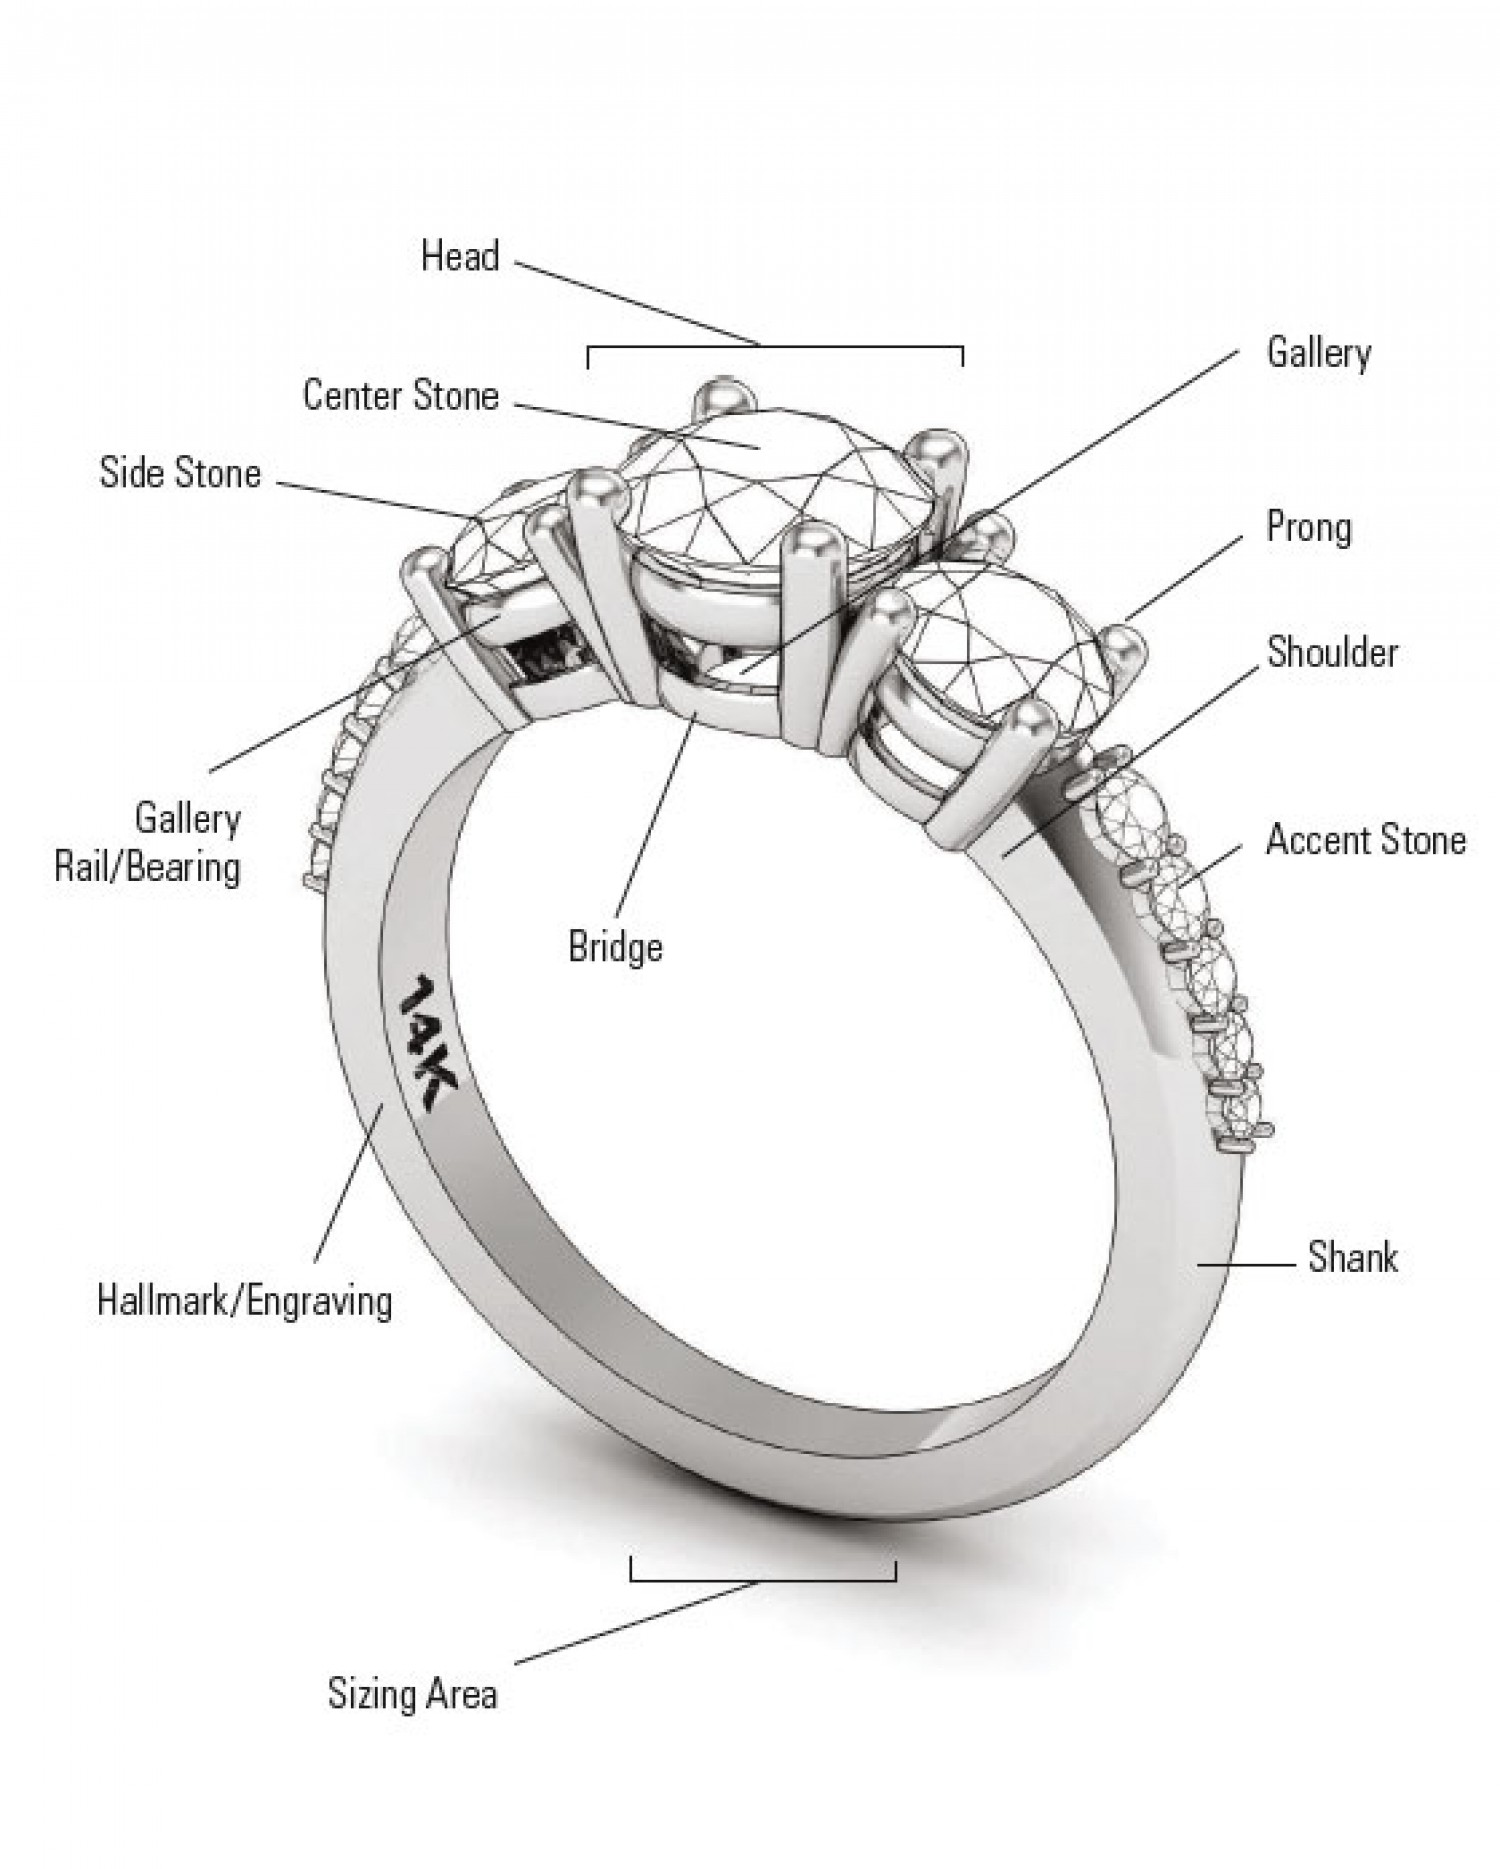 Parts of the engagement ring: stone, band, shank, railing, prong